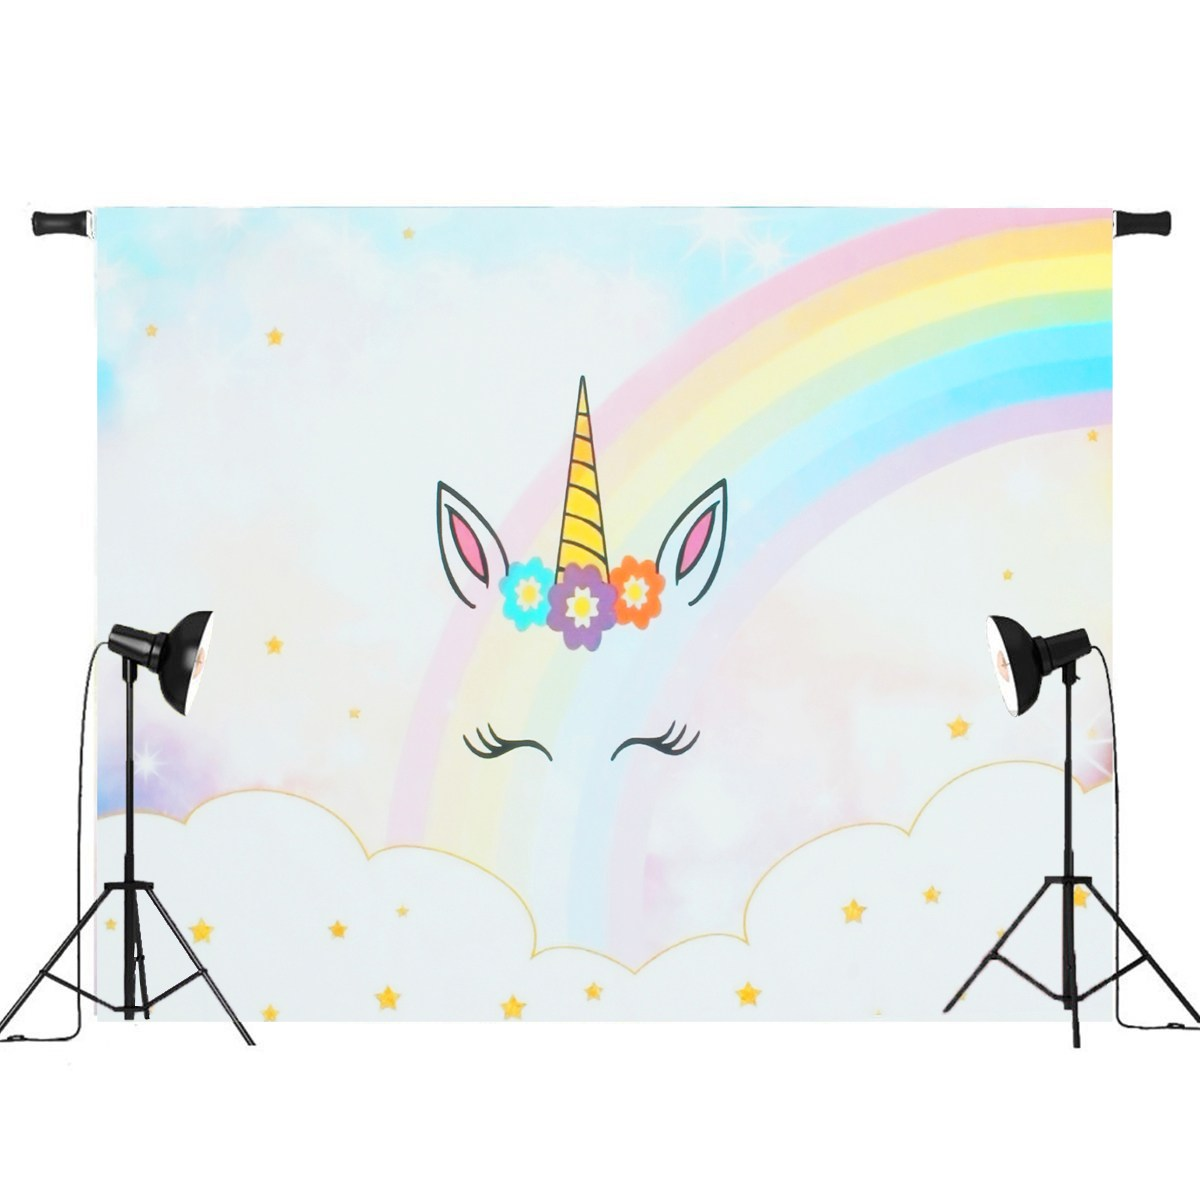 7x5ft / 5x3ft Rainbow Clouds Sky For Unicorn Children Photo Backgrounds Studio Props 2018 New Arrival